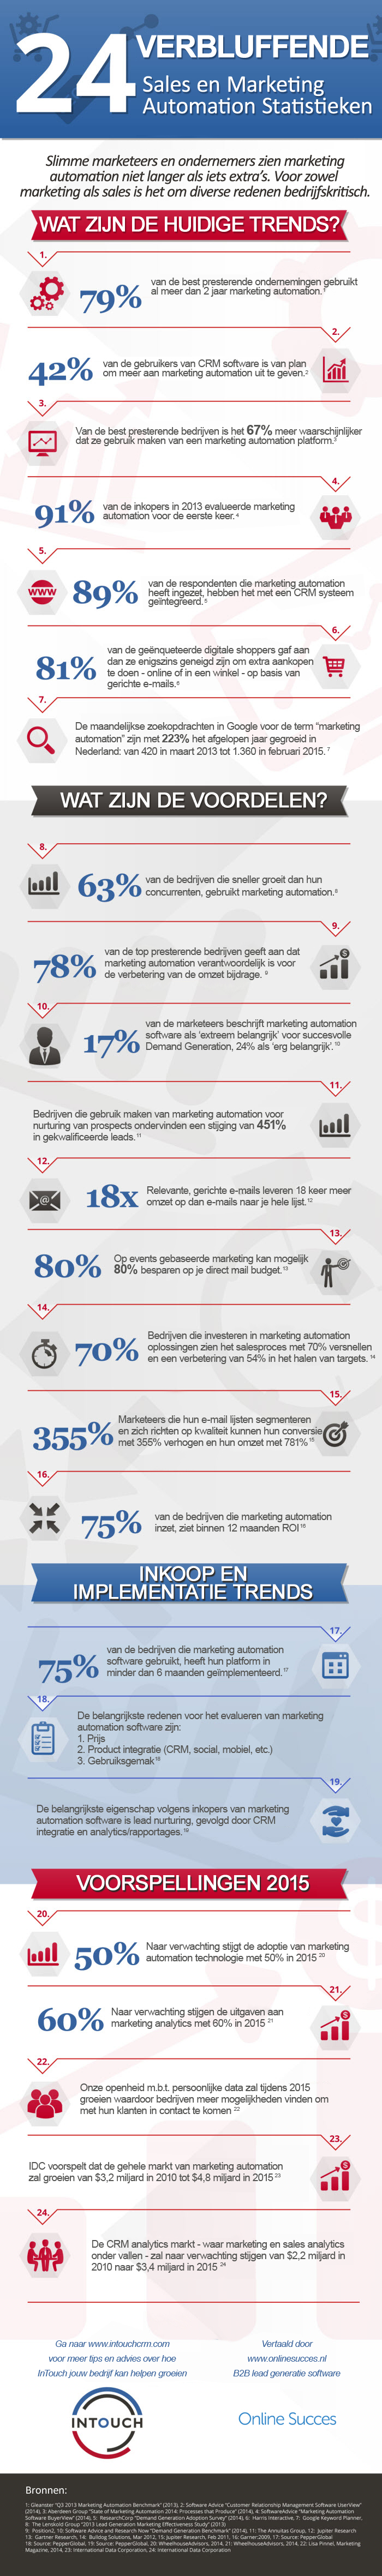 marketing-automation-infographic-24-verbluffende-statistieken-v2